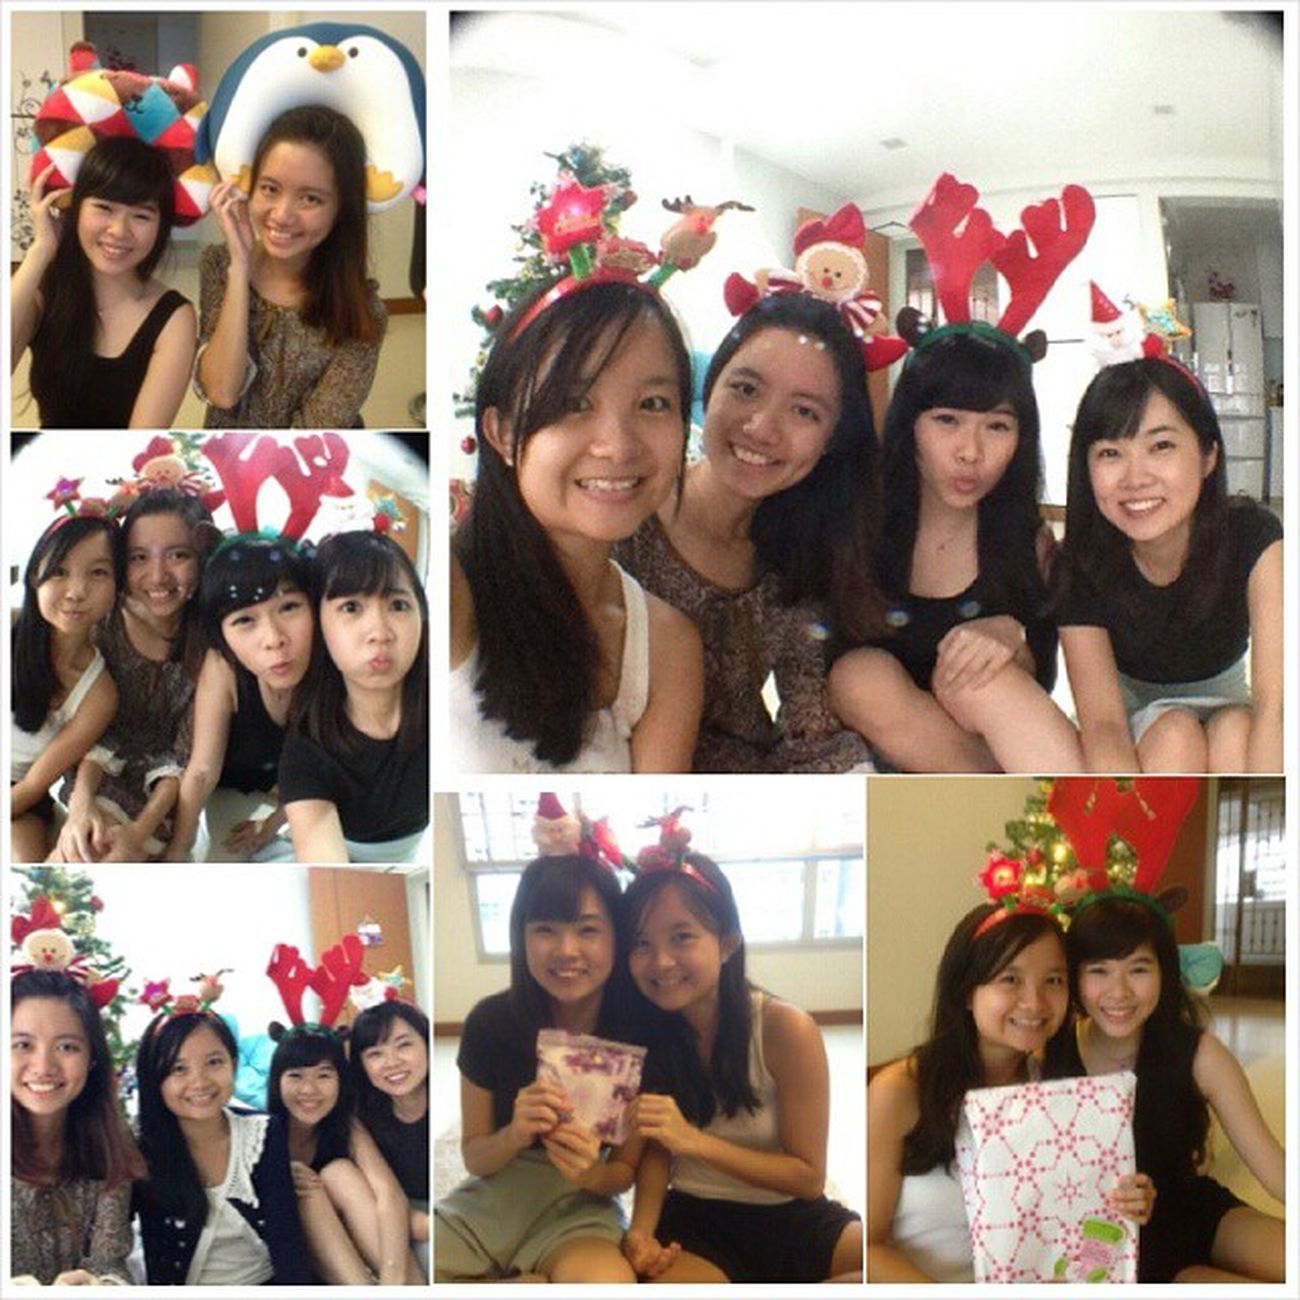 Belated Christmas exchange at @sinyeemidori 's nest. Hehehe. Had a short and really awesome time eating alot of snacks and playing Kinect (Cardio lor) lol. Epic moments captured And zi char to end the day hehee. Love my babes ♥♥♥ Eatandplay Yay Babes Hehehe lovethemmanymany giftexchange